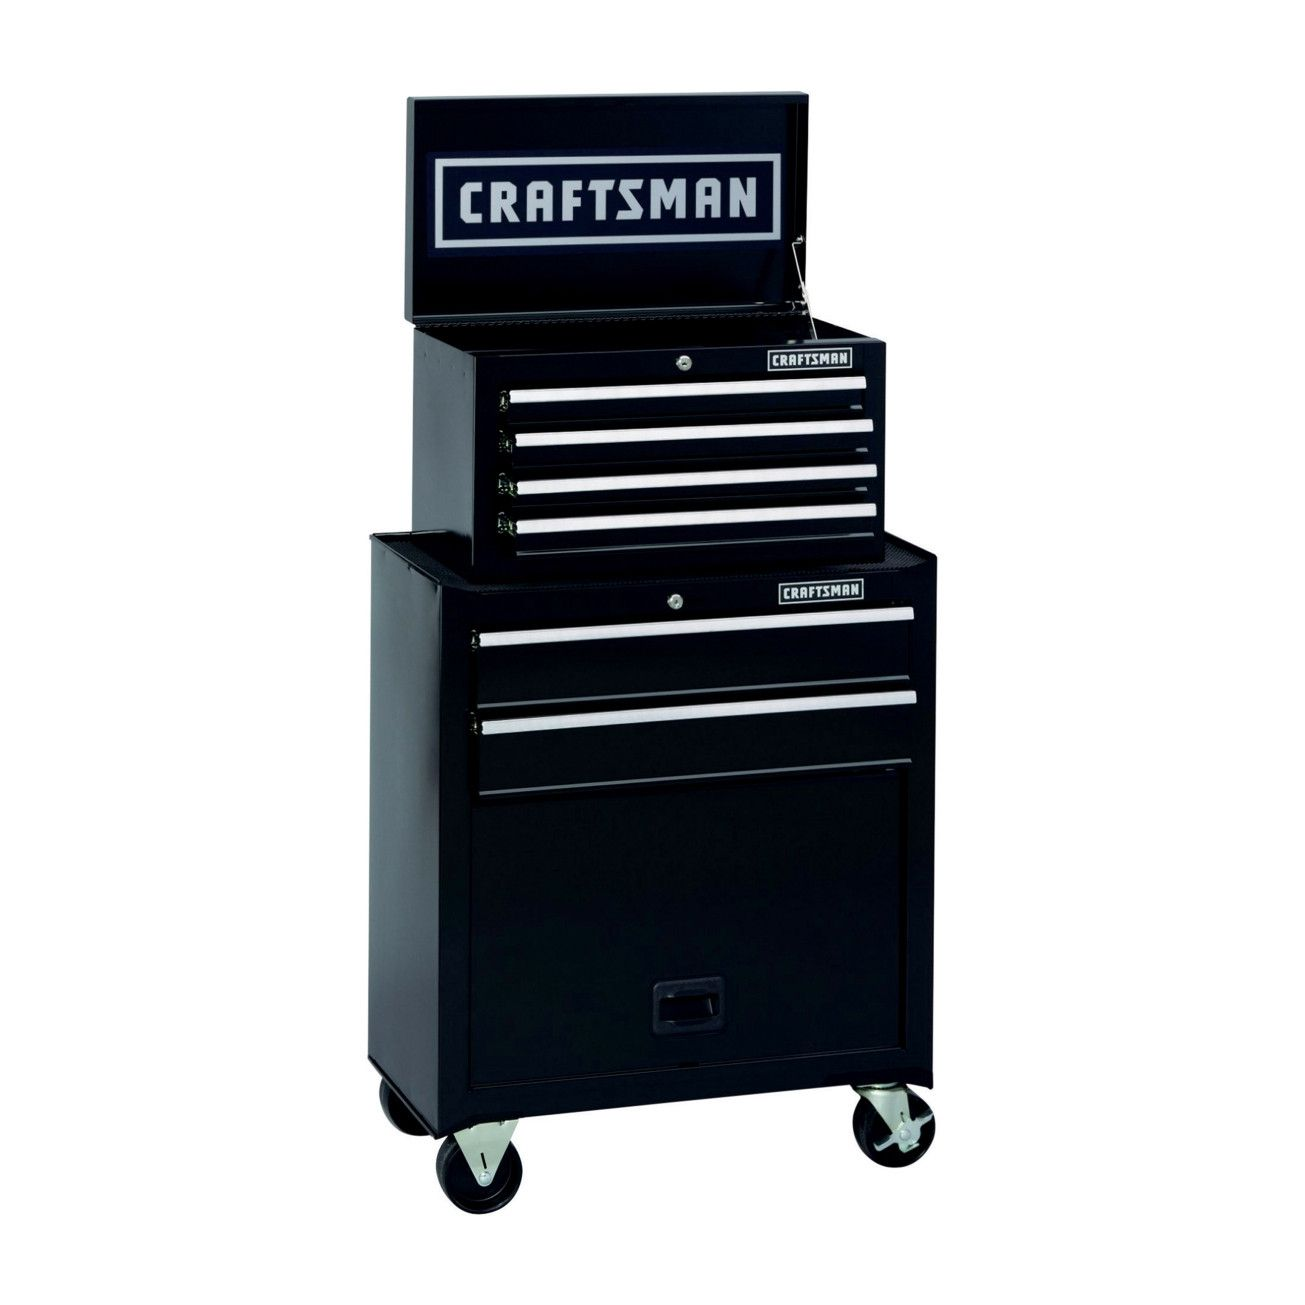 2019 Sears Tool Chests And Cabinets   Chalkboard Ideas For Kitchen Check  More At Http: